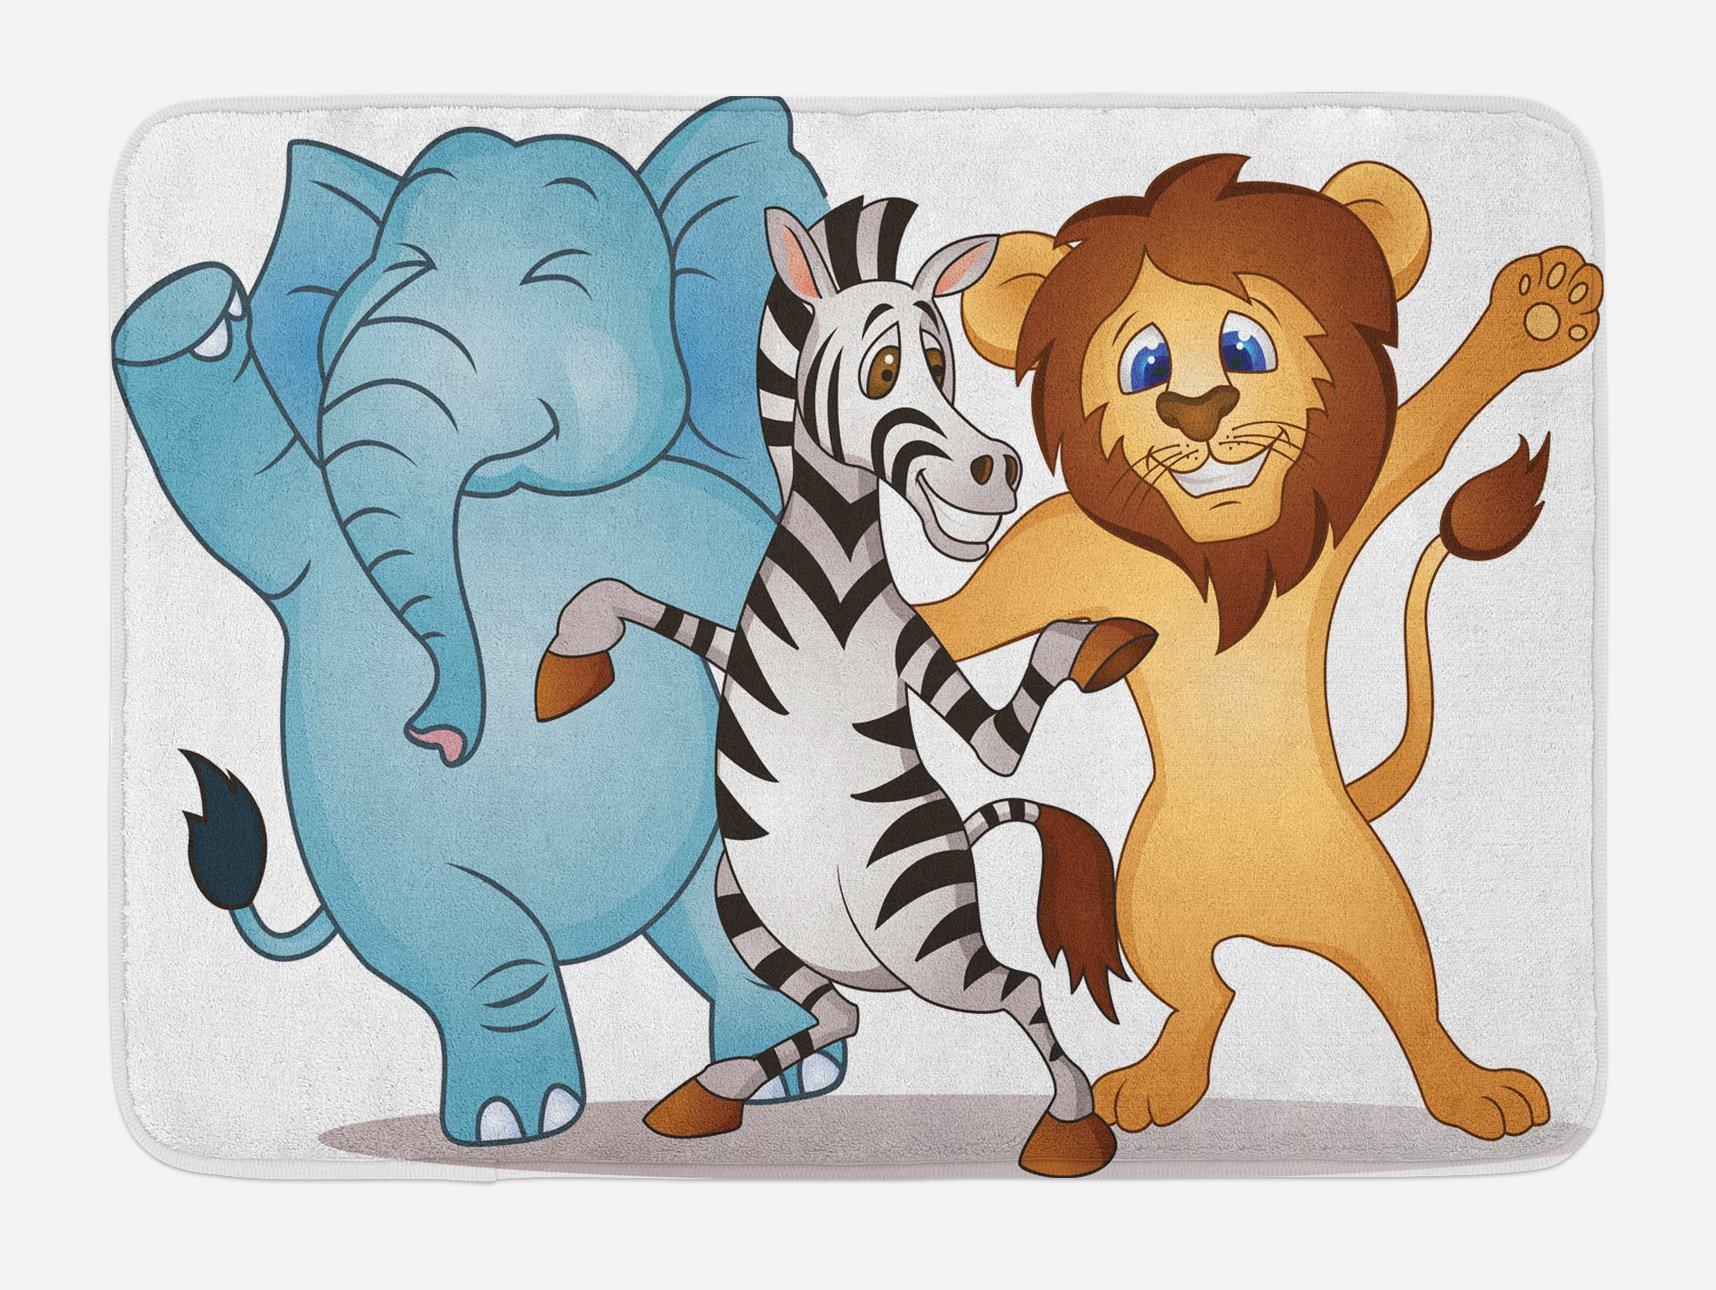 Lunarable Animal Bath Mat, Cute Dancing African Zebra Lion Elephant Party in Savannah Safari Cartoon Print, Plush Bathroom Decor Mat with Non Slip Backing, 29.5 W X 17.5 W Inches, Multicolor